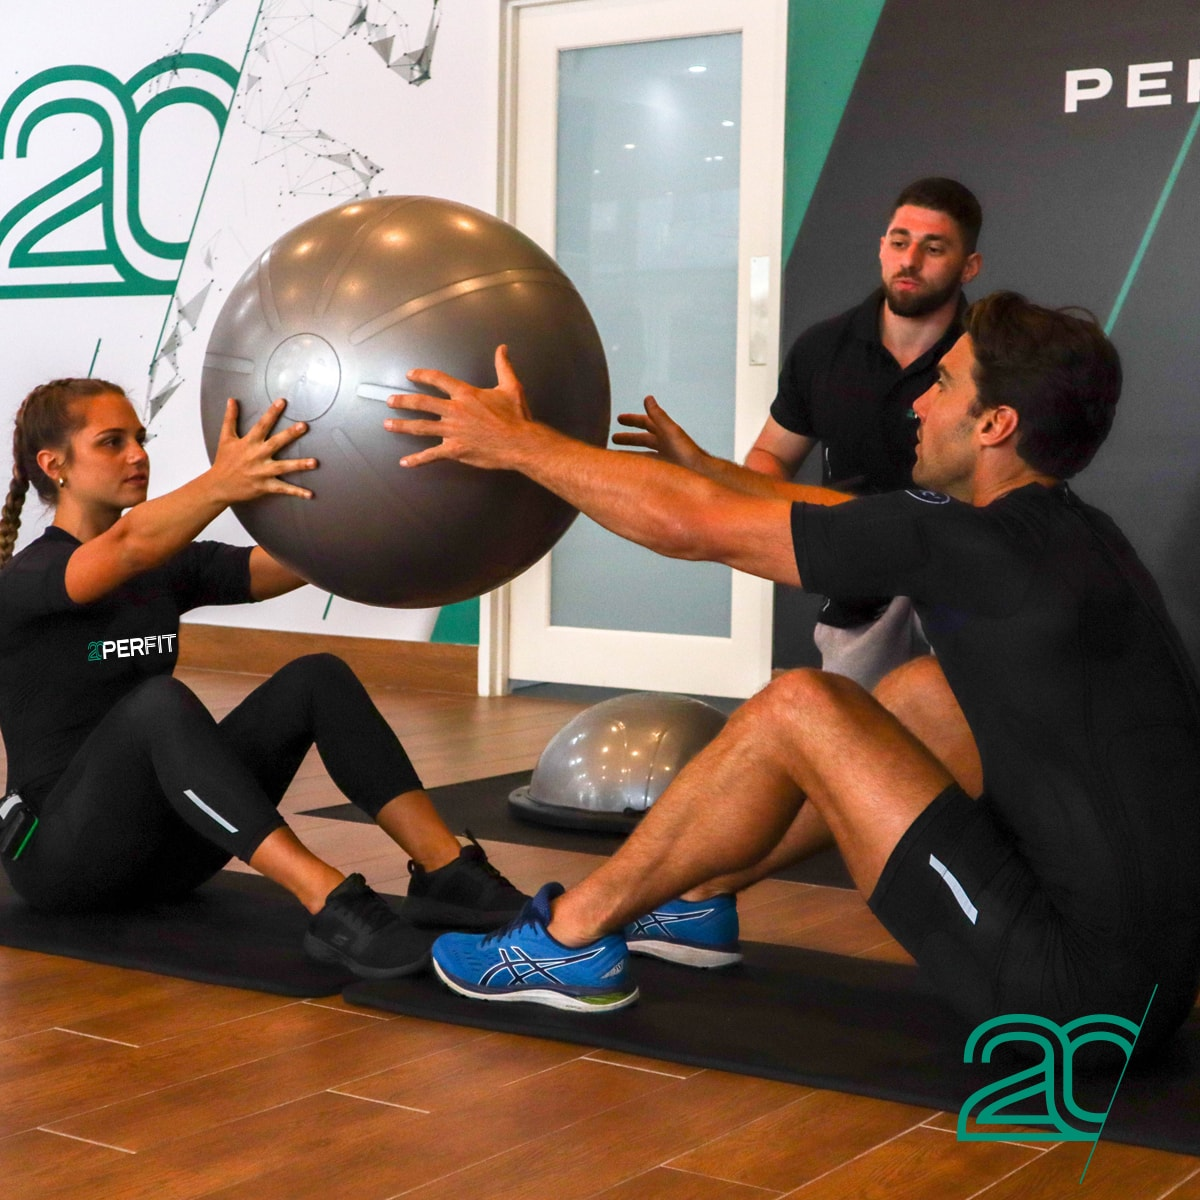 Exercising with an Anti-burst Gym Ball Using 20PerFit's EMS Technology